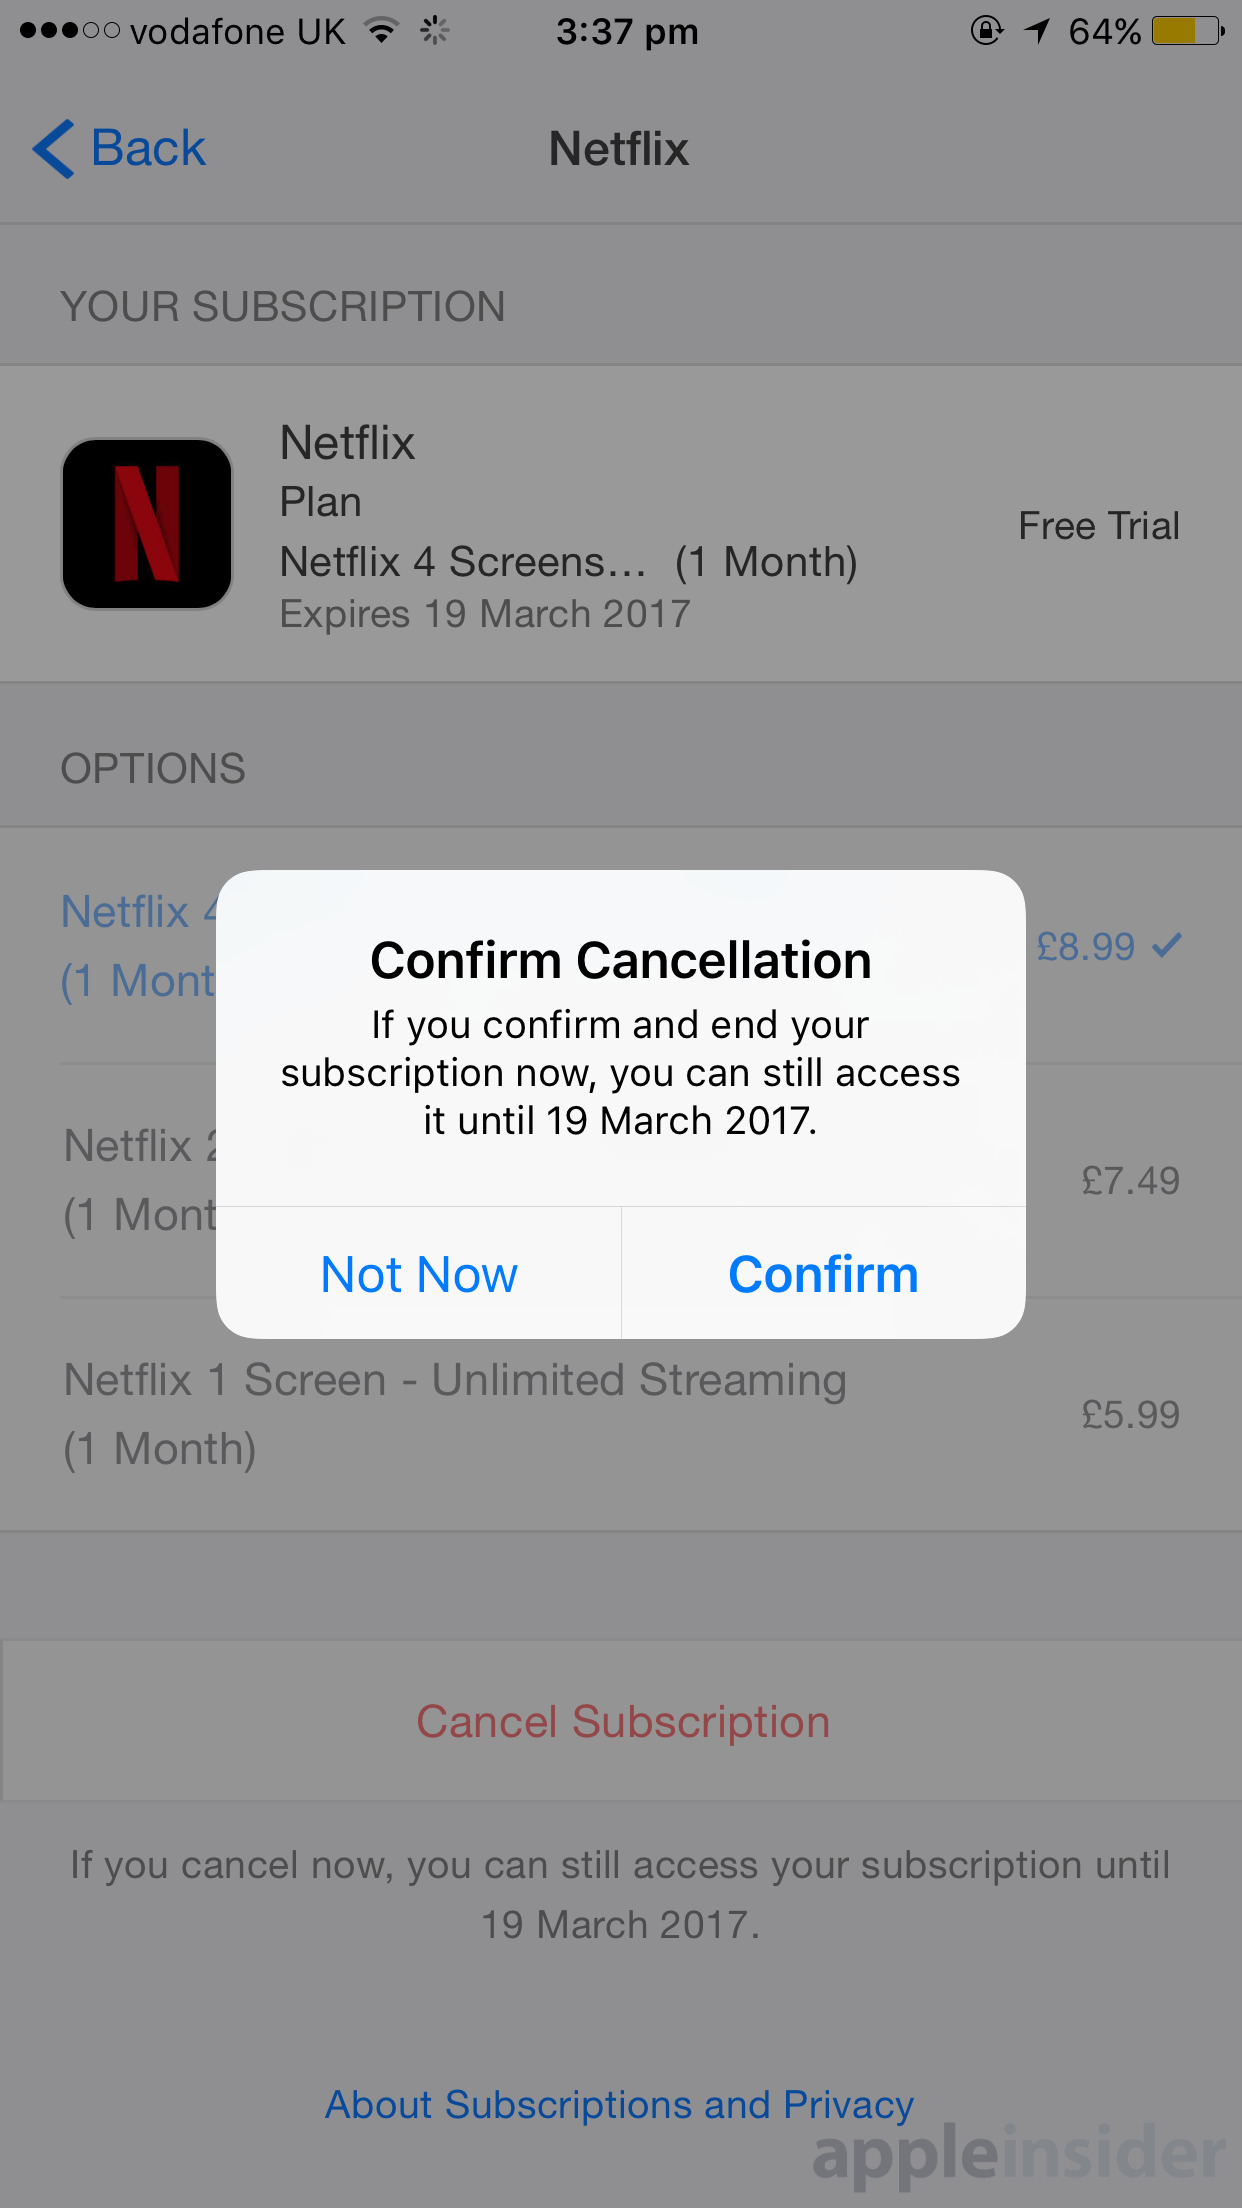 cancel store subscription ipad iphone apple